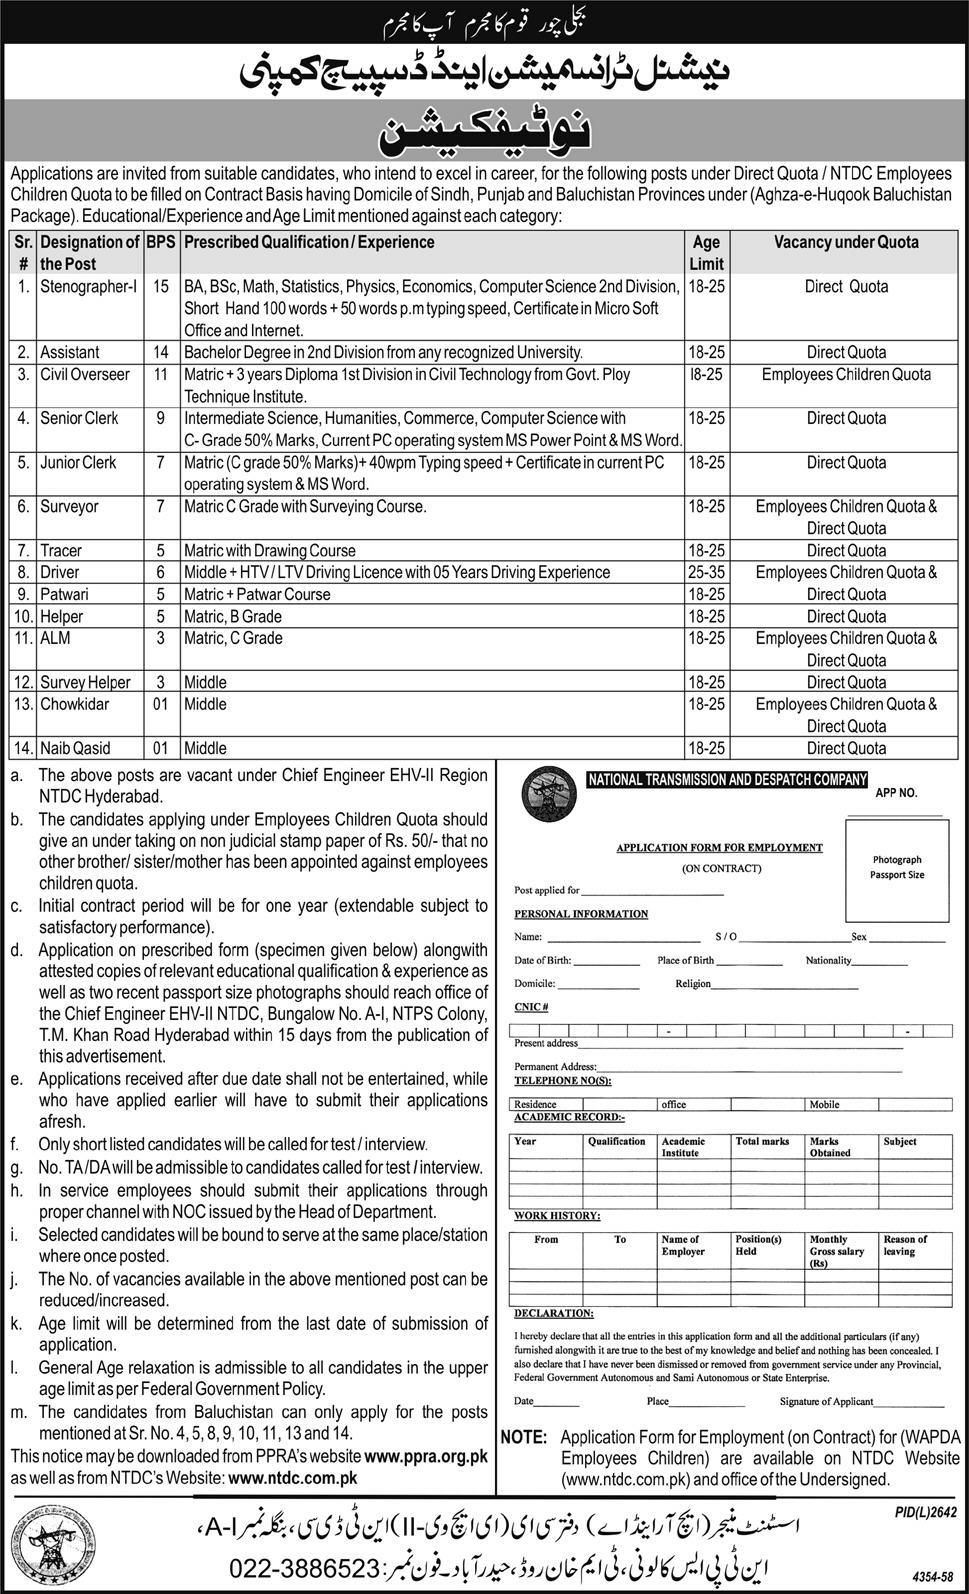 NTDC Hyderabad Jobs 2013 April WAPDA EHV-II/2 Region Latest Advertisement